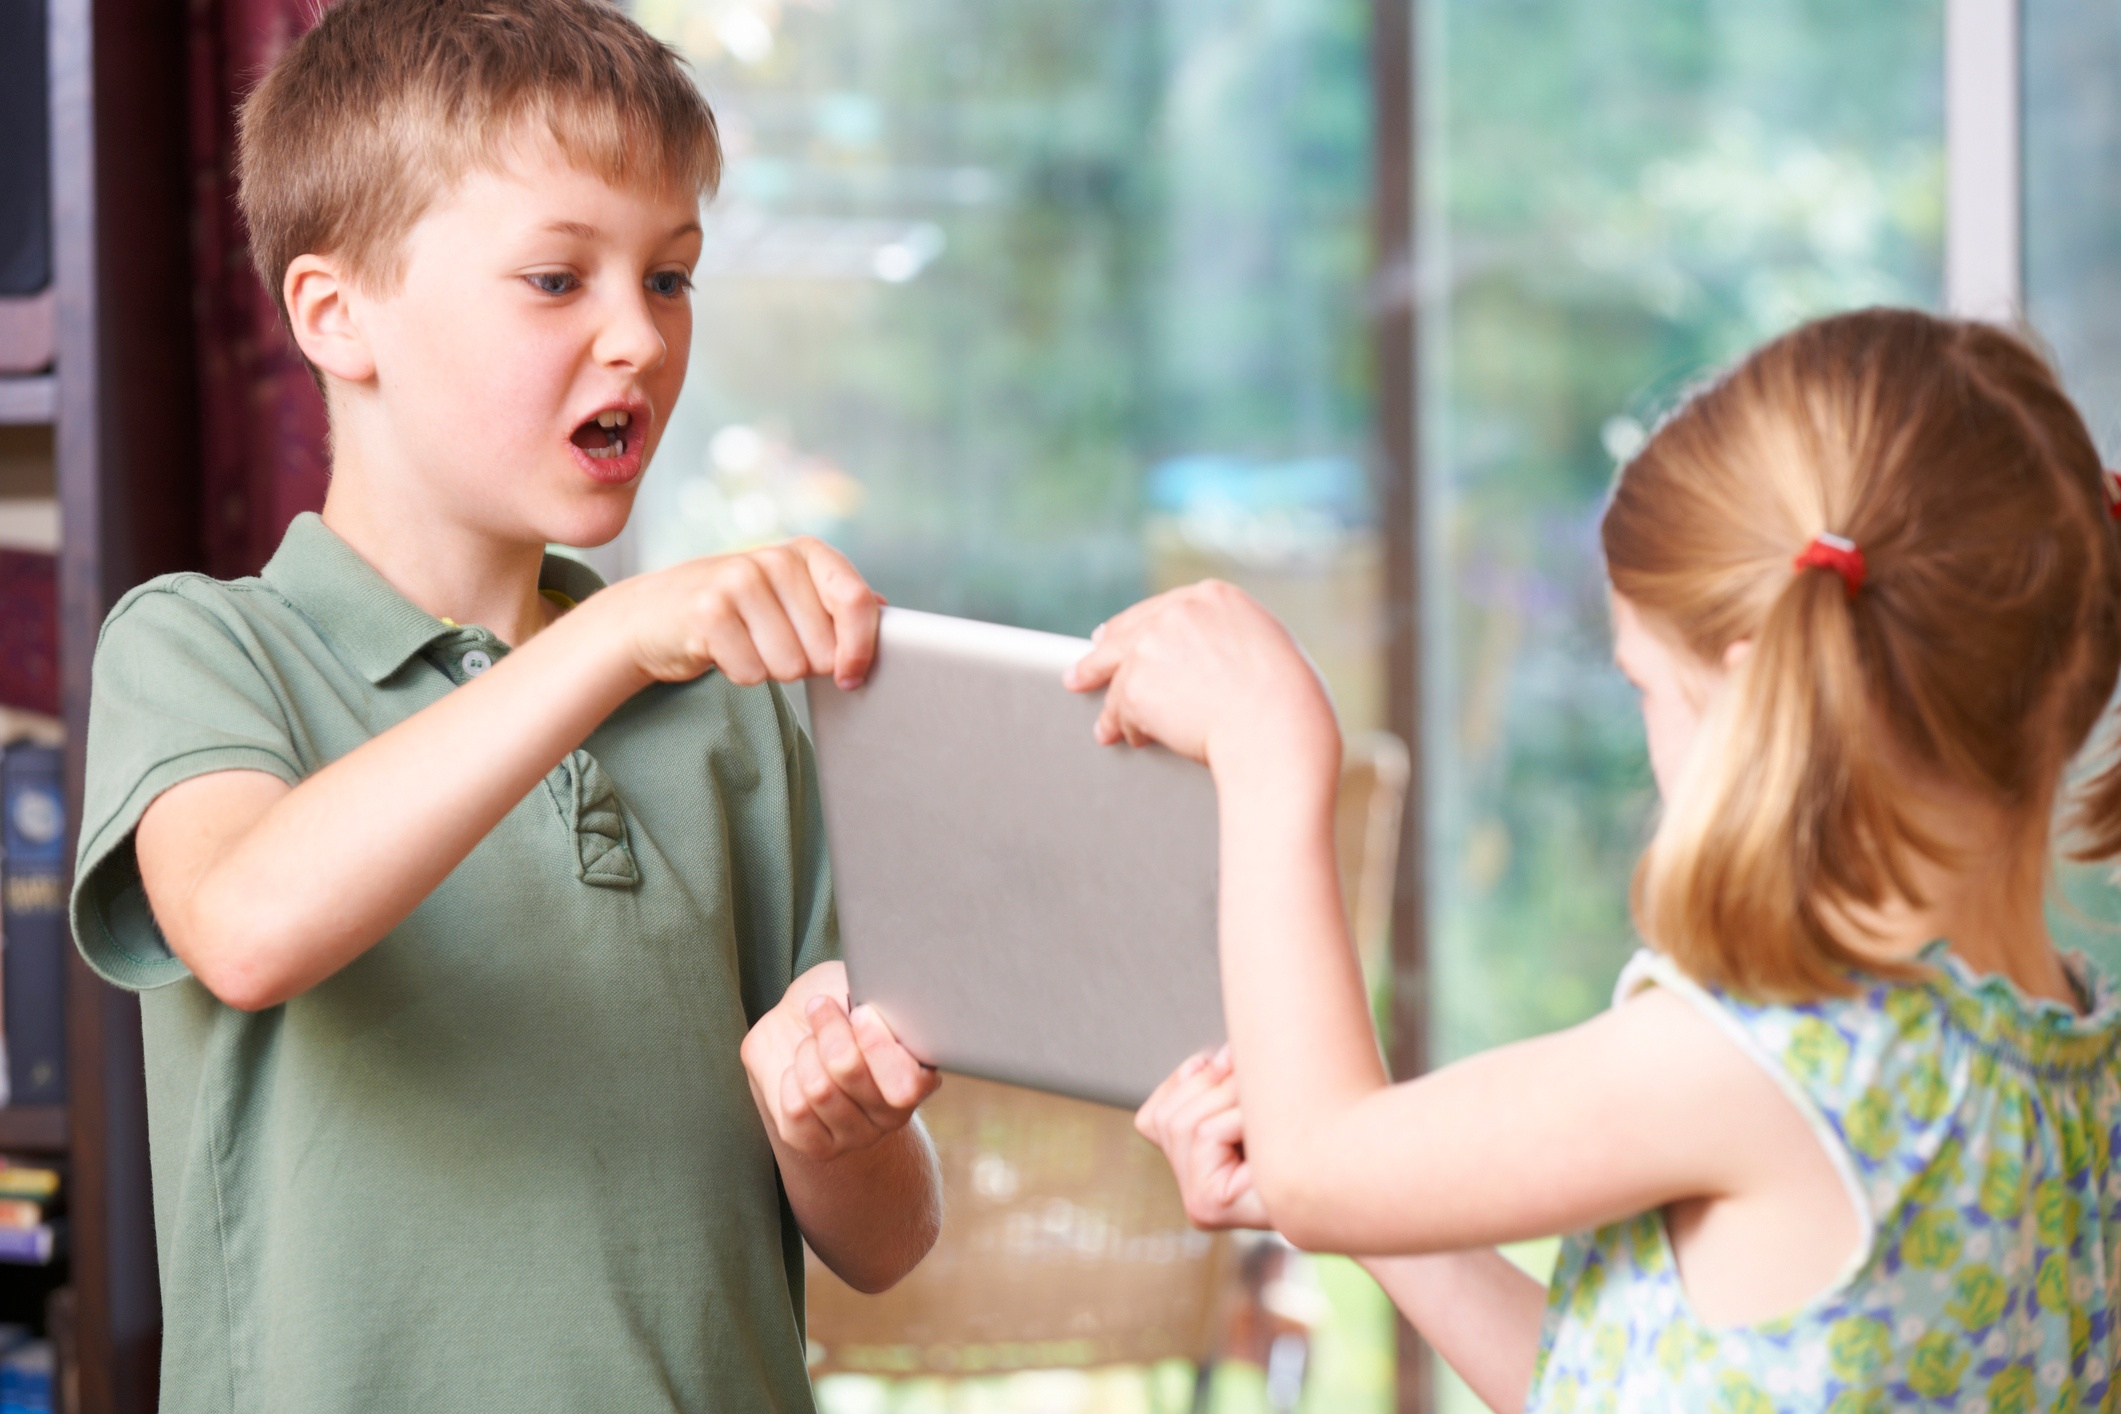 Boy and girl fighting over a iPad